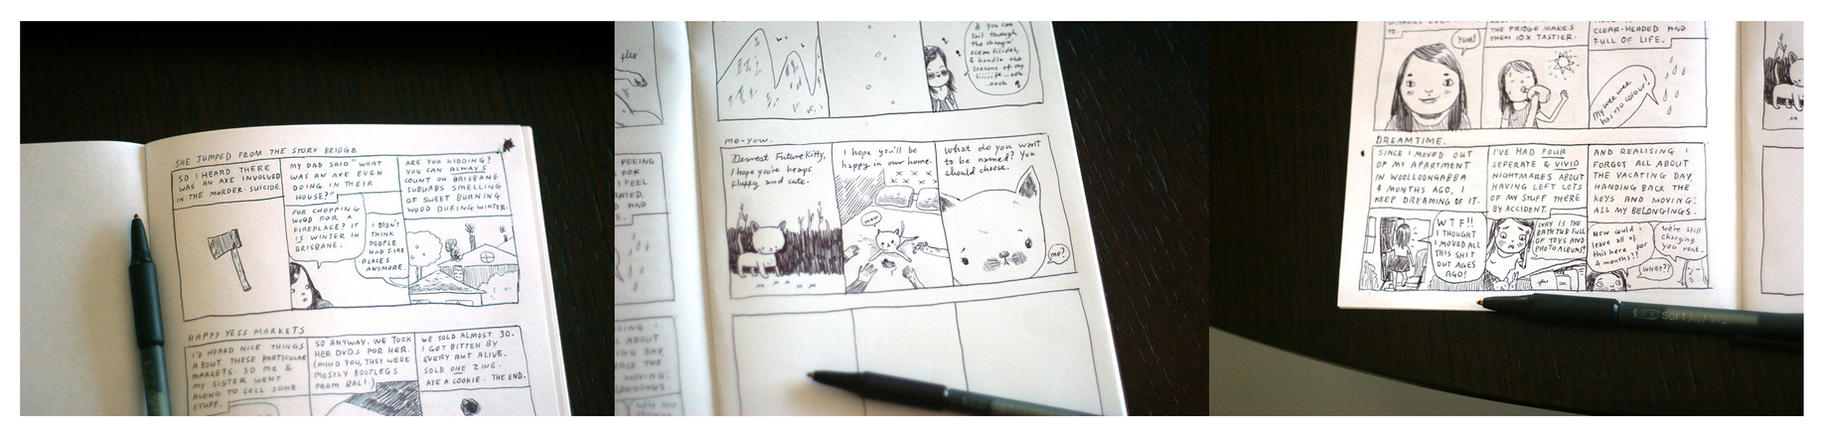 New comics for new zine by perfectnoseclub